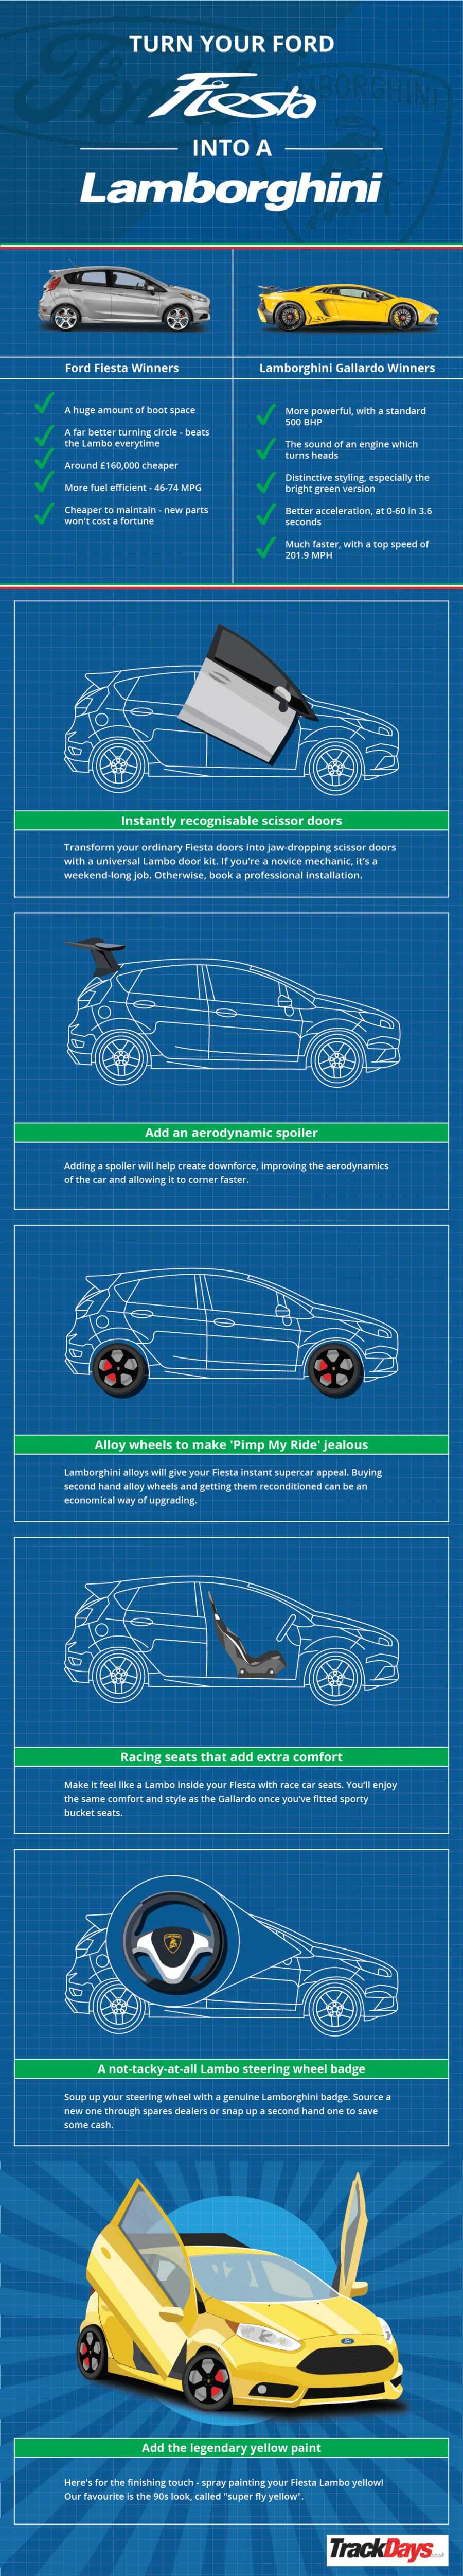 Infographic: Turn your Ford Fiesta into a Lamborghini Gallardo